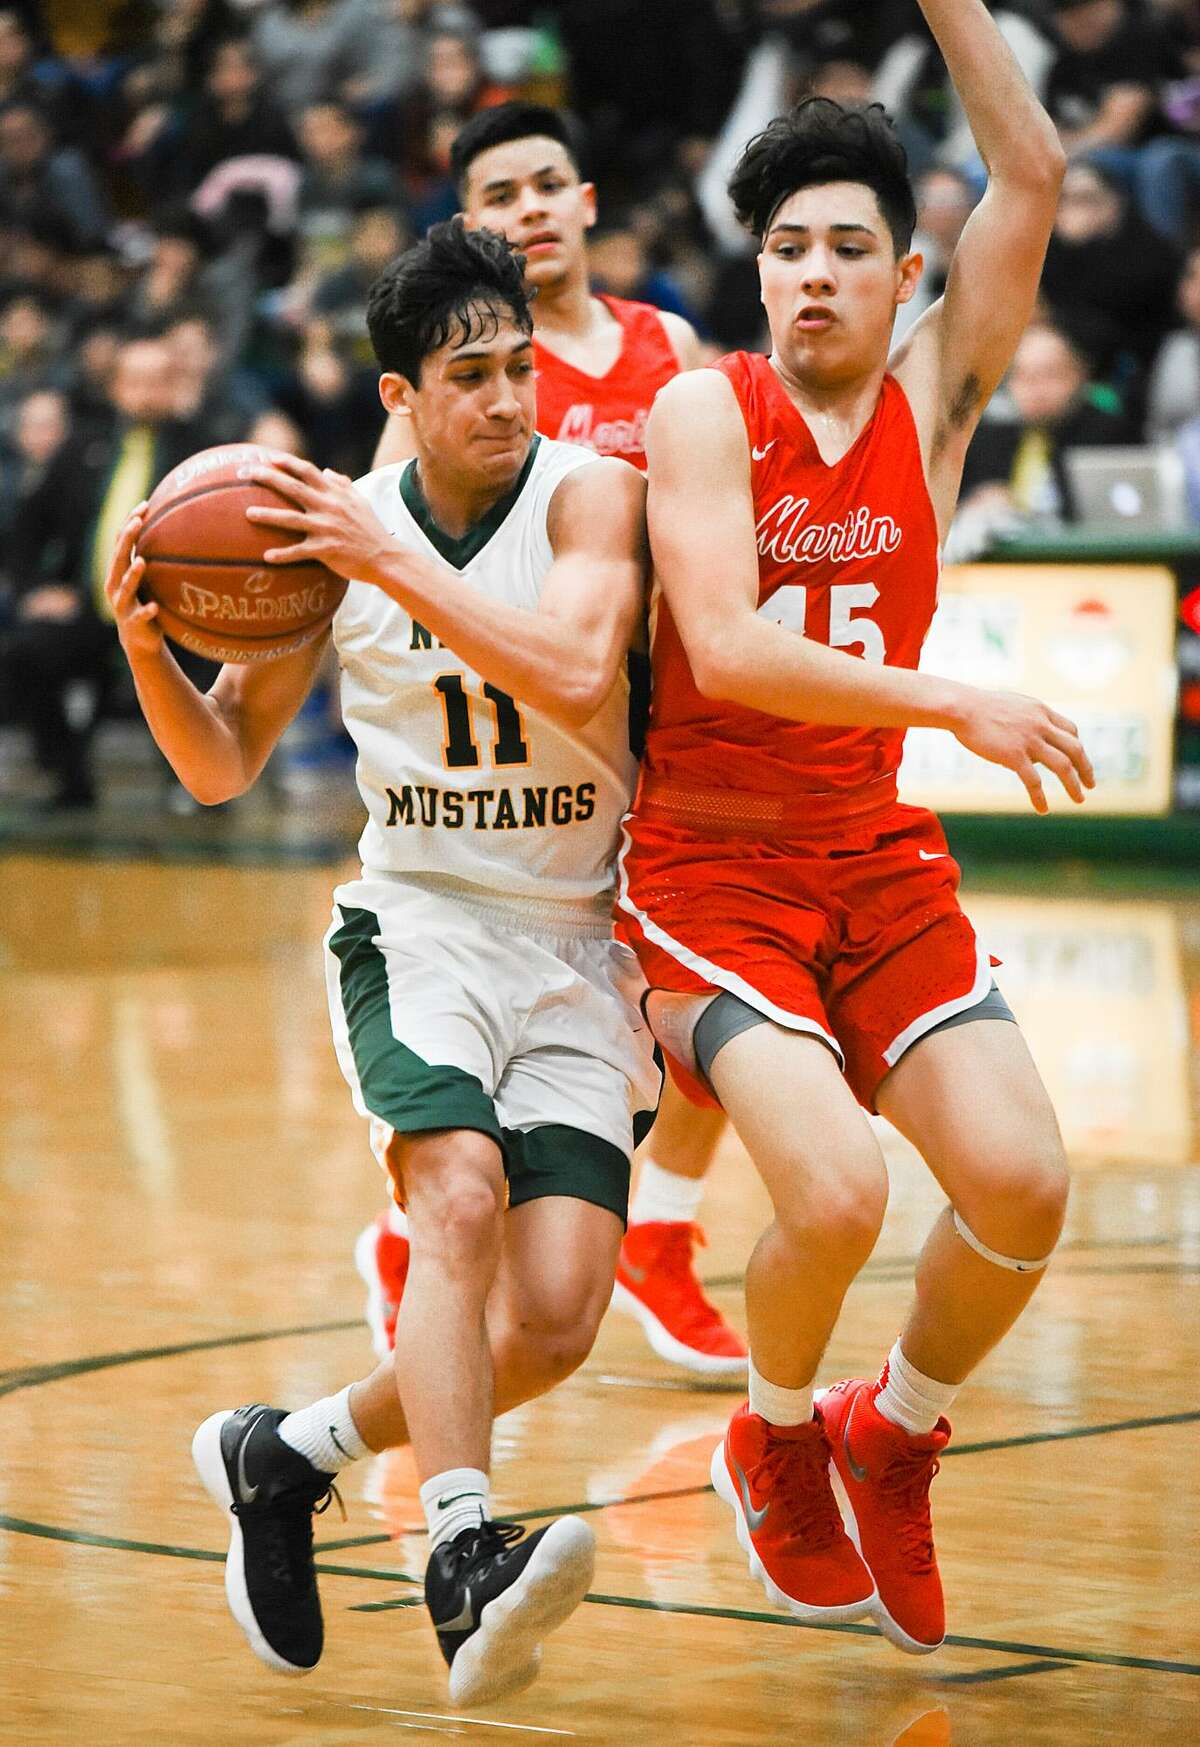 Nixon (29-6, 15-1 District 31-5A) meets the No. 4 seed out of District 32-5A, Brownsville Porter (10-14, 7-7), Tuesday night at Roma while Martin (20-13, 14-2) squares off against Brownsville Veterans - the team it beat in the regional quarterfinals last year - at Corpus Christi's Ray High School.